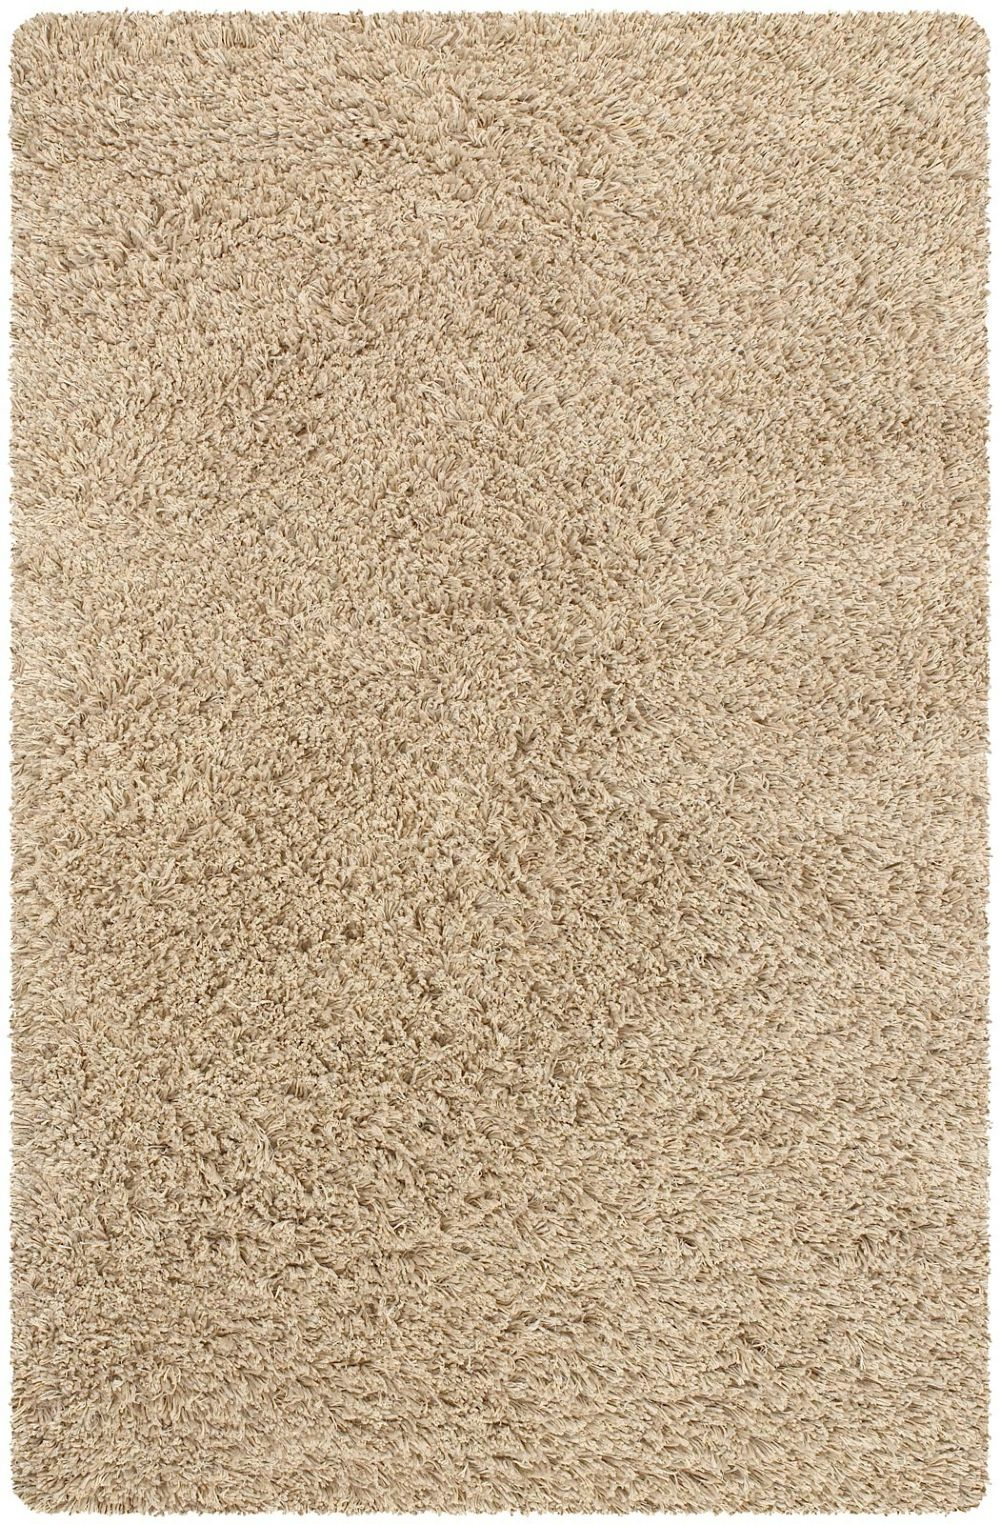 chandra core shag shag area rug collection